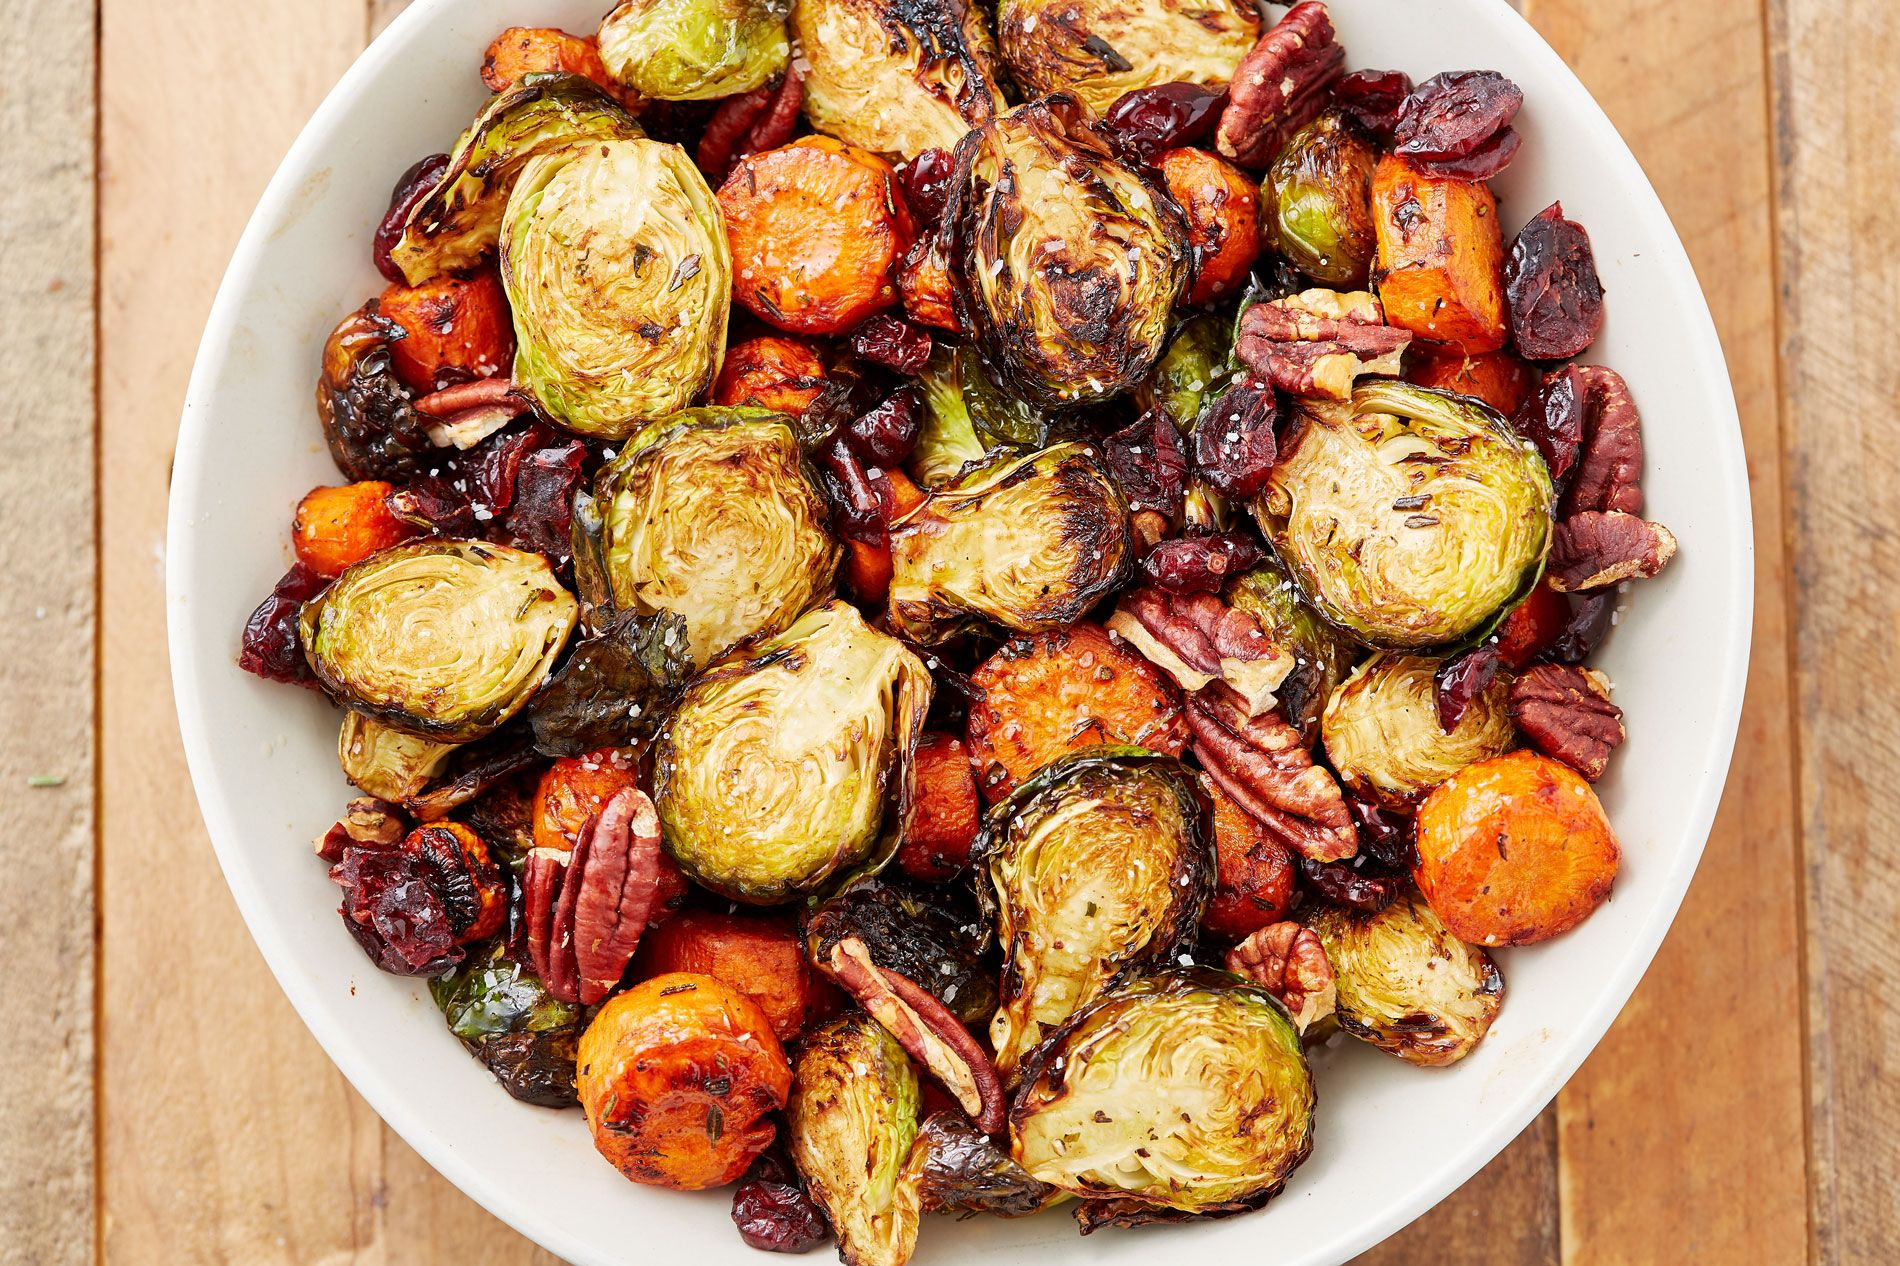 15 Healthy Thanksgiving Side Dish Recipes That'll Help You Leave Room for Dessert